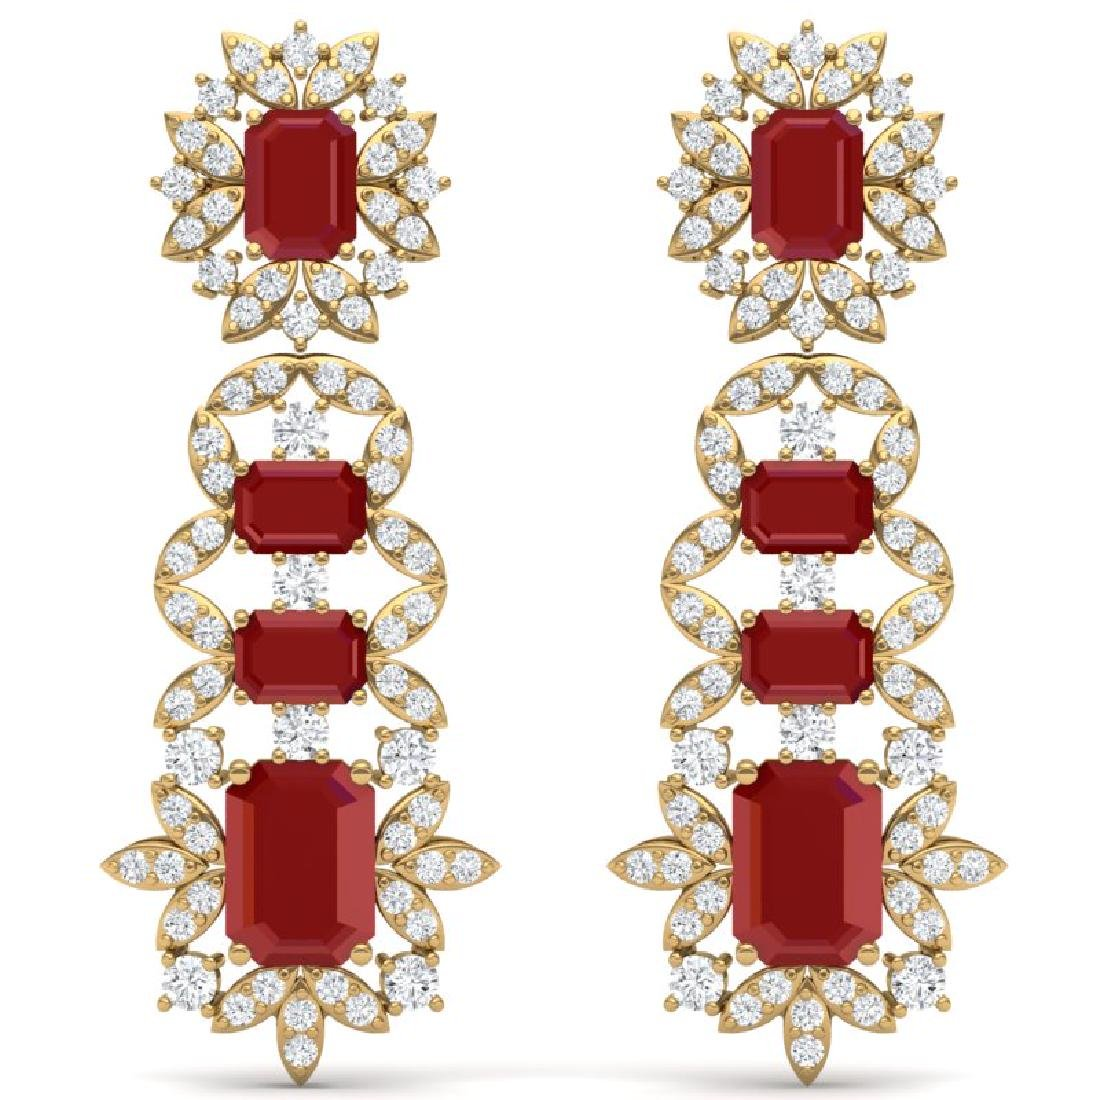 30.25 CTW Royalty Designer Ruby & VS Diamond Earrings